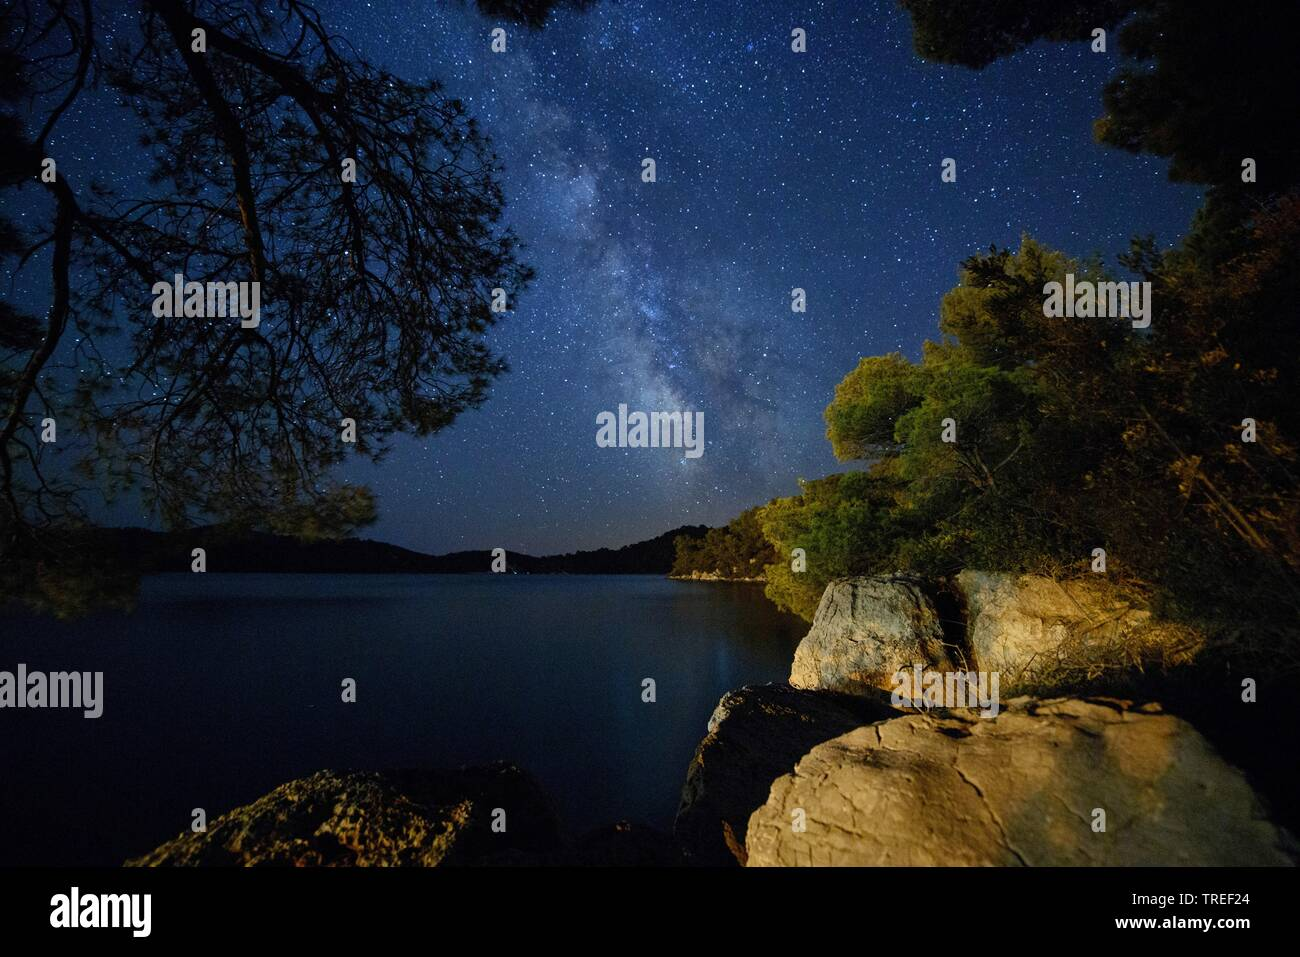 Sternenhimmel mit Milchstrasse ueber einem See im Nationalpark Mljet, Kroatien, Mljet Nationalpark | starry night with milky way above a lake in the M - Stock Image